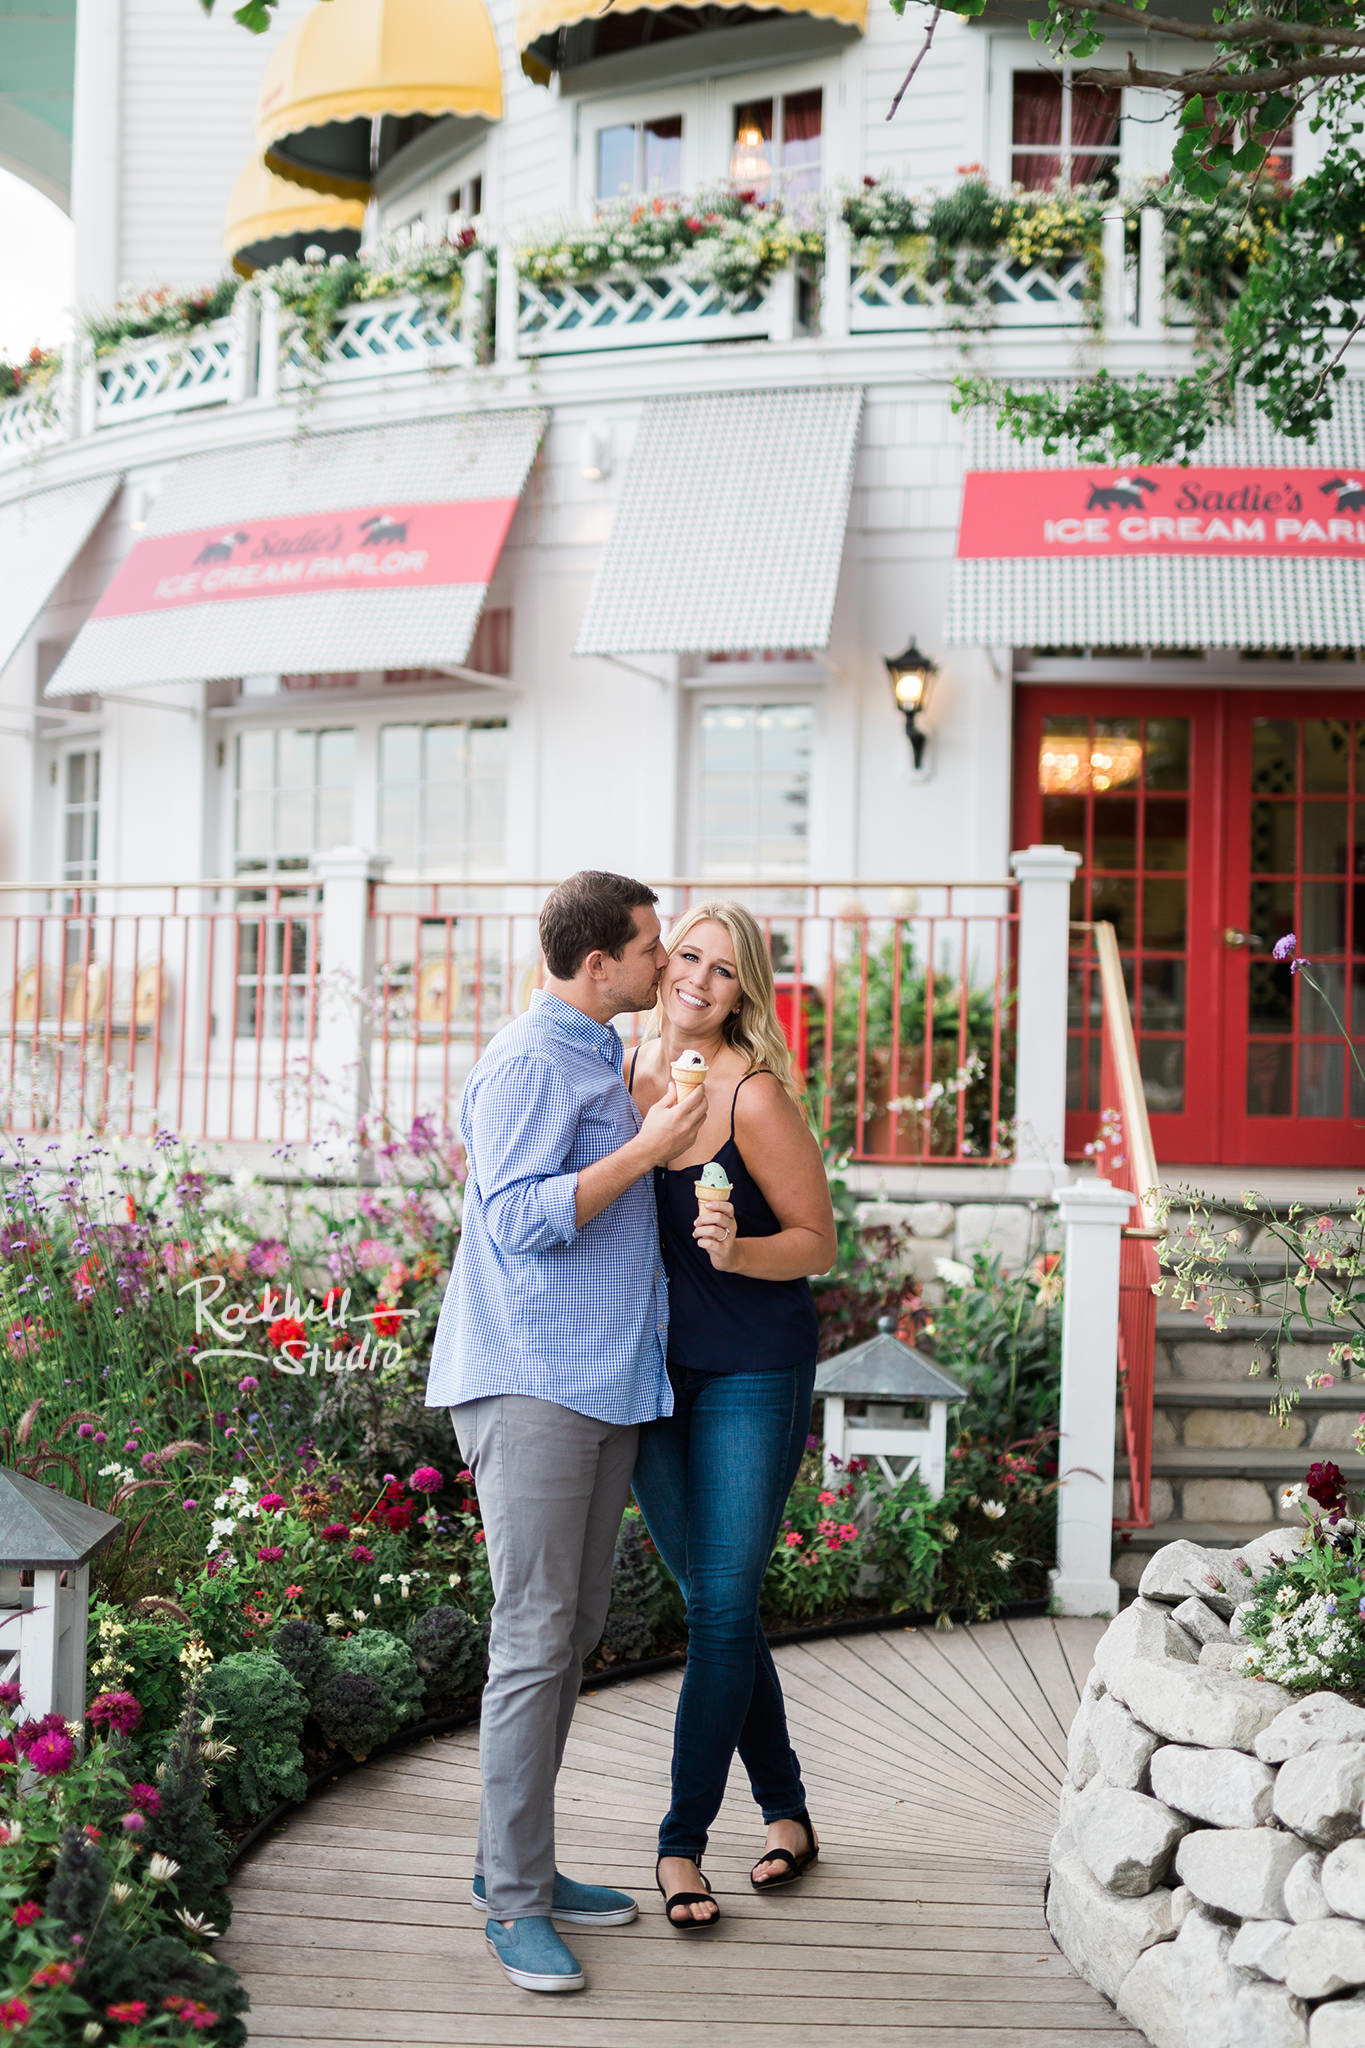 Mackinac Island Engagement, Grand Hotel Sadies Ice cream parlor, Traverse City wedding photographer Rockhill Studio